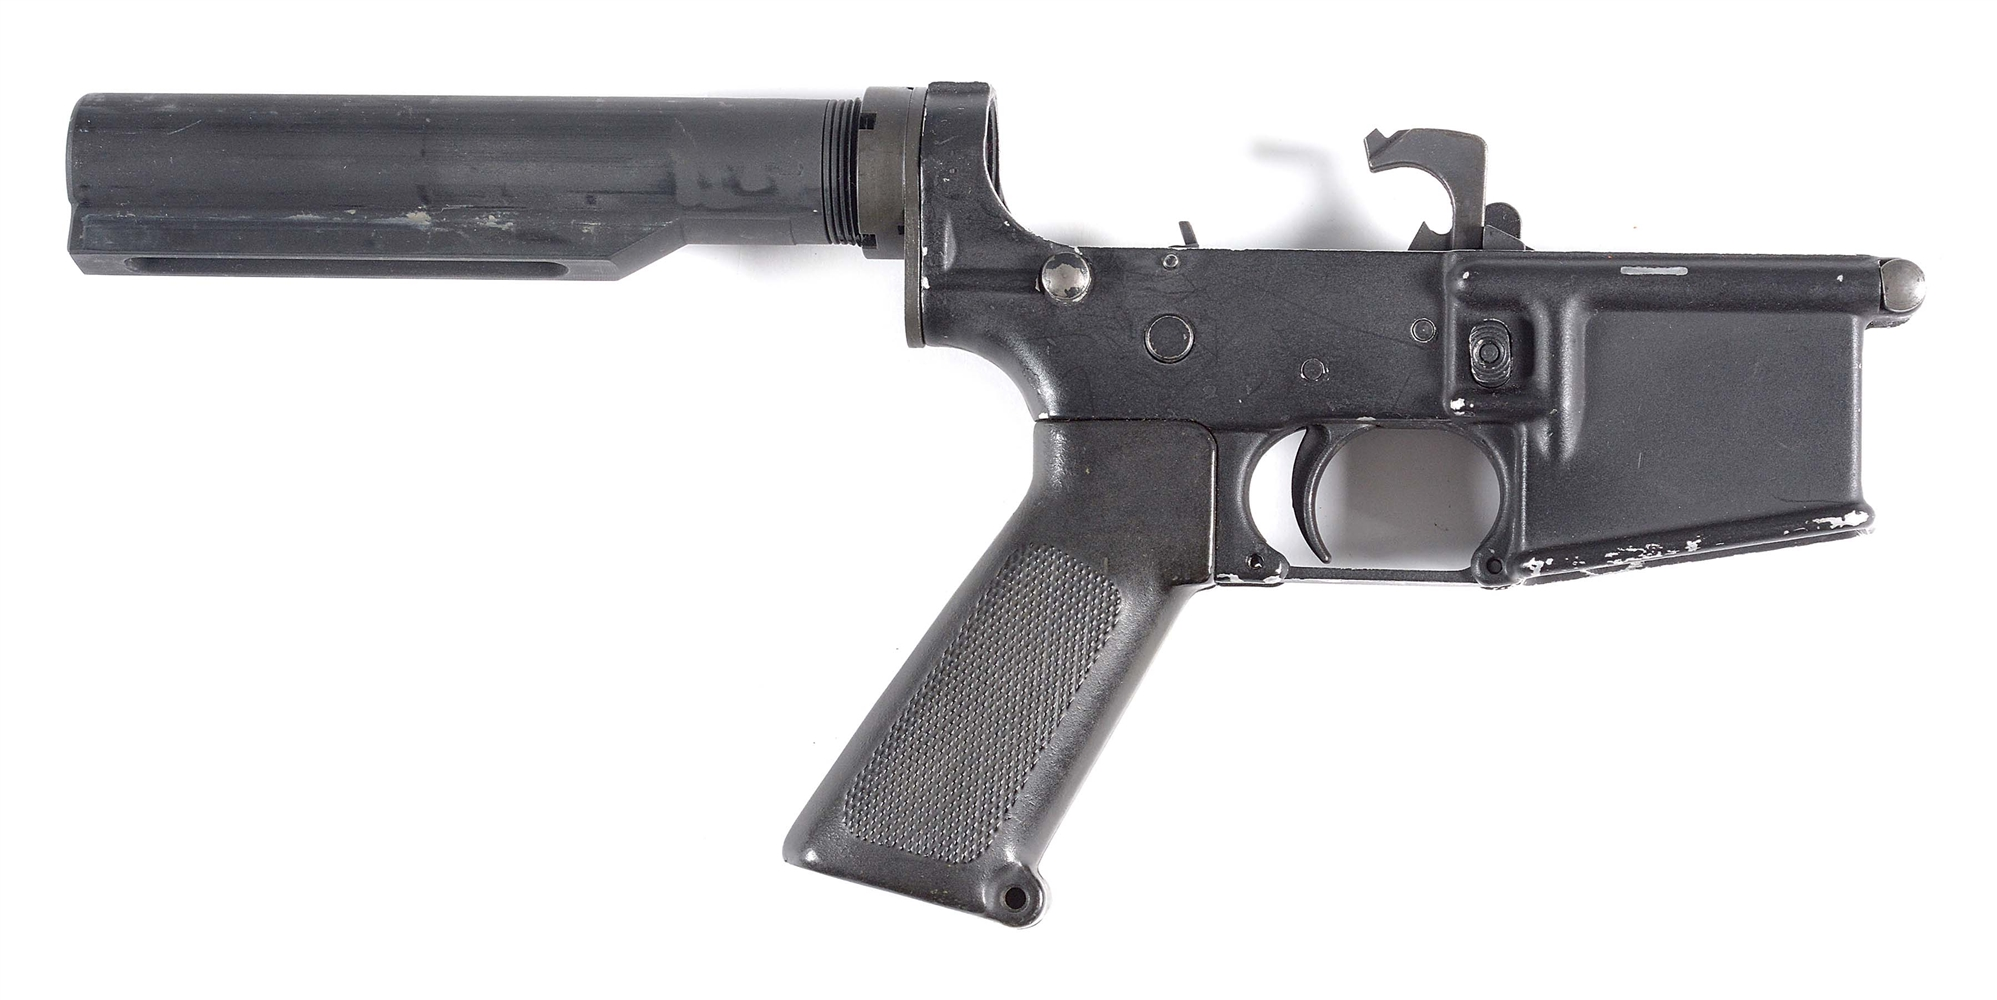 (N) ROCK ISLAND ARMORY REGISTERED XM-15A1 (M16A1) LOWER MACHINE GUN ASSEMBLY ONLY (FULLY TRANSFERABLE).